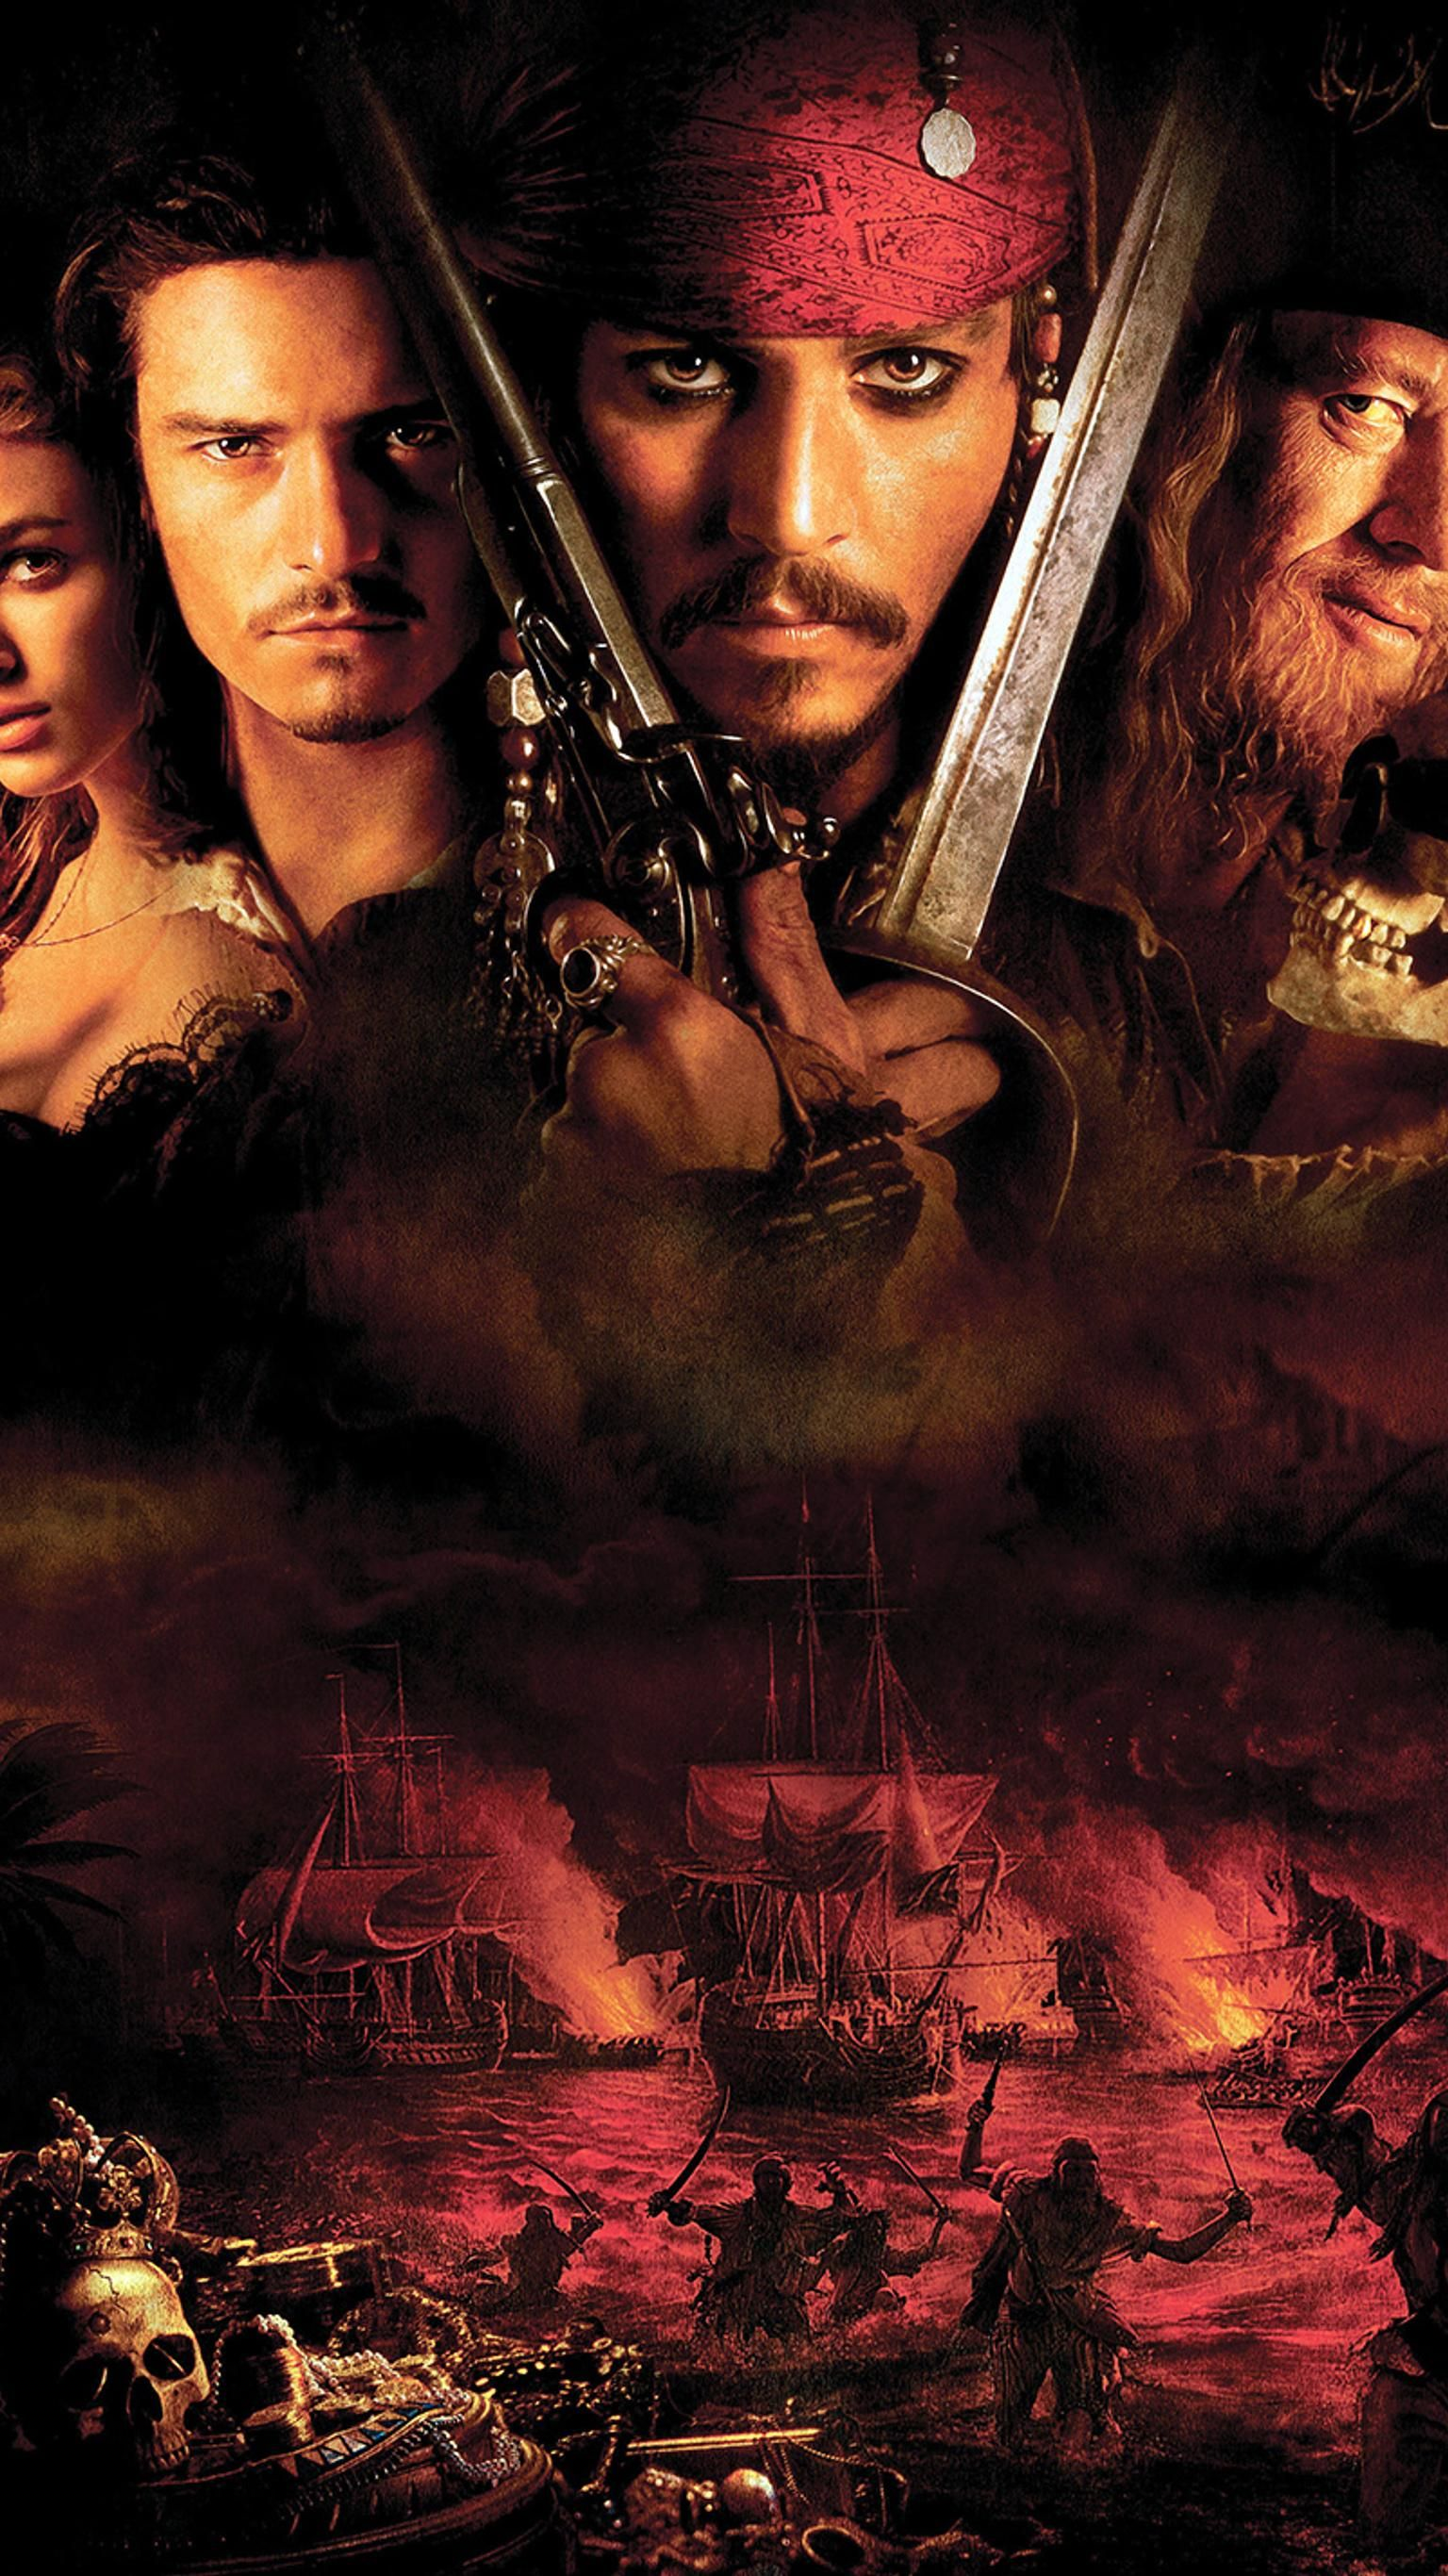 Pirates Of The Caribbean The Curse Of The Black Pearl 2003 Phone Wallpaper Moviemania Pirates Of The Caribbean Pirates Caribbean